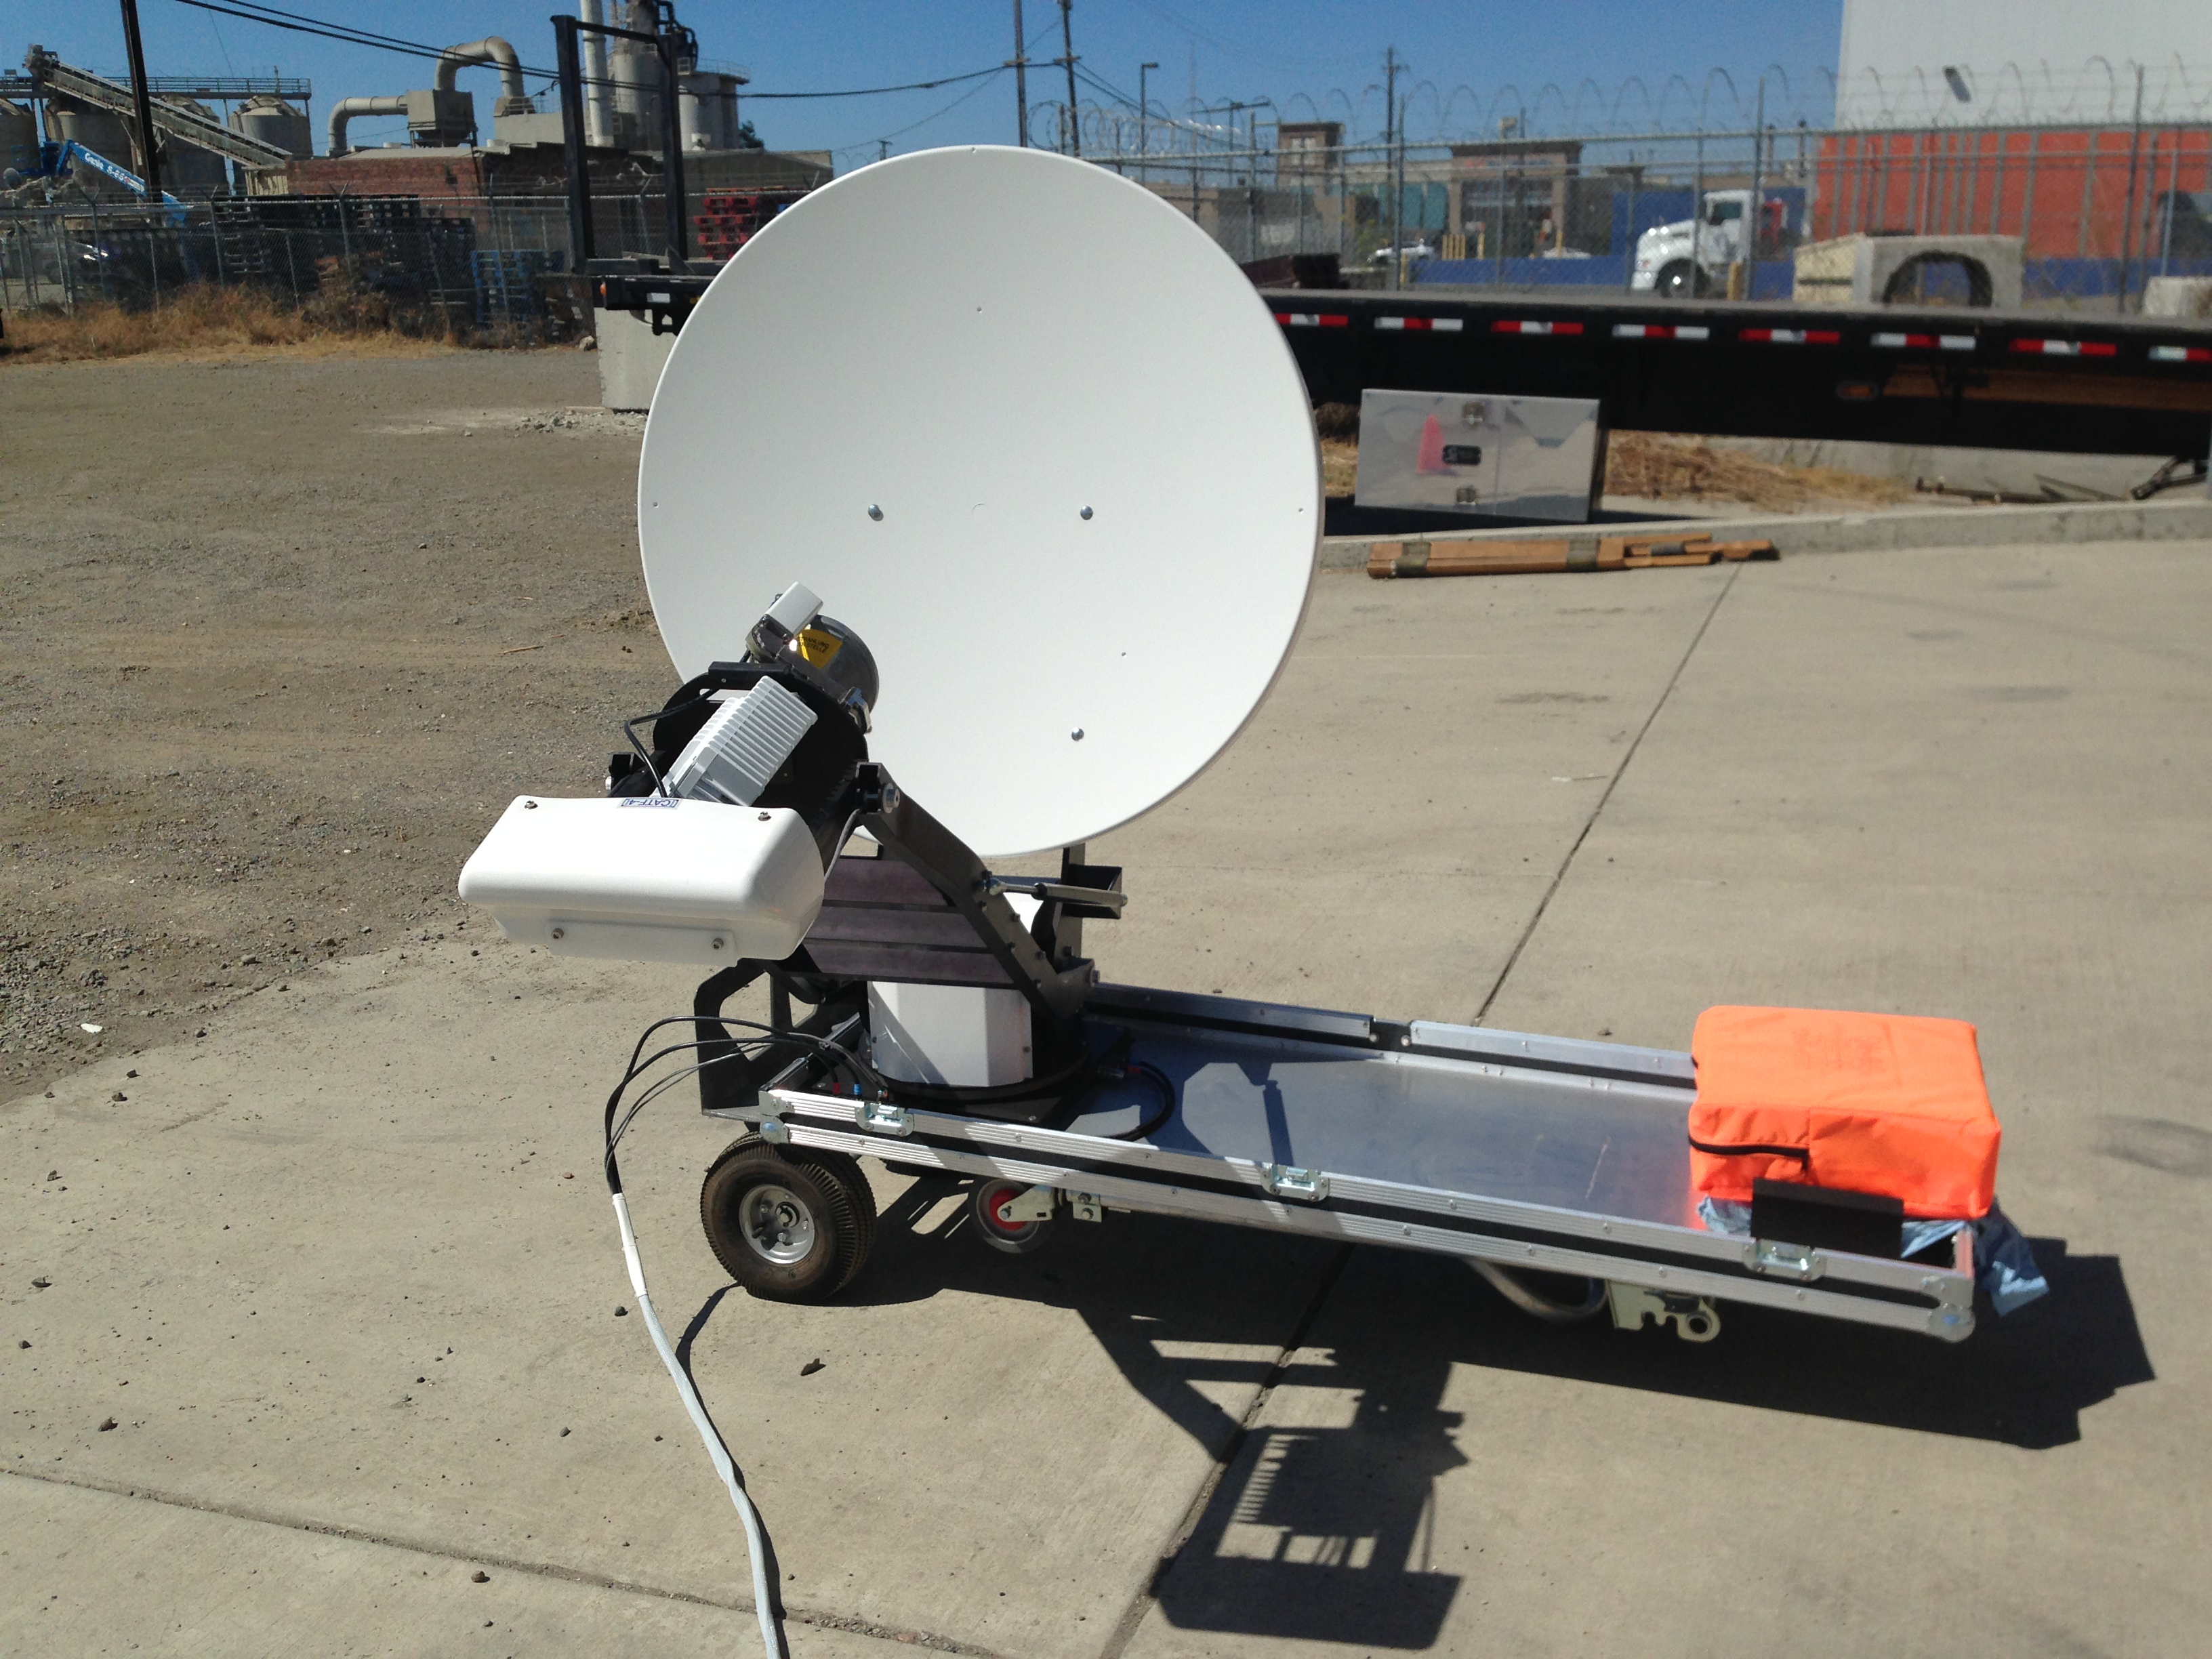 Toughsat XP 0.98 Meter Flyaway Satellite System $ 19,744.00